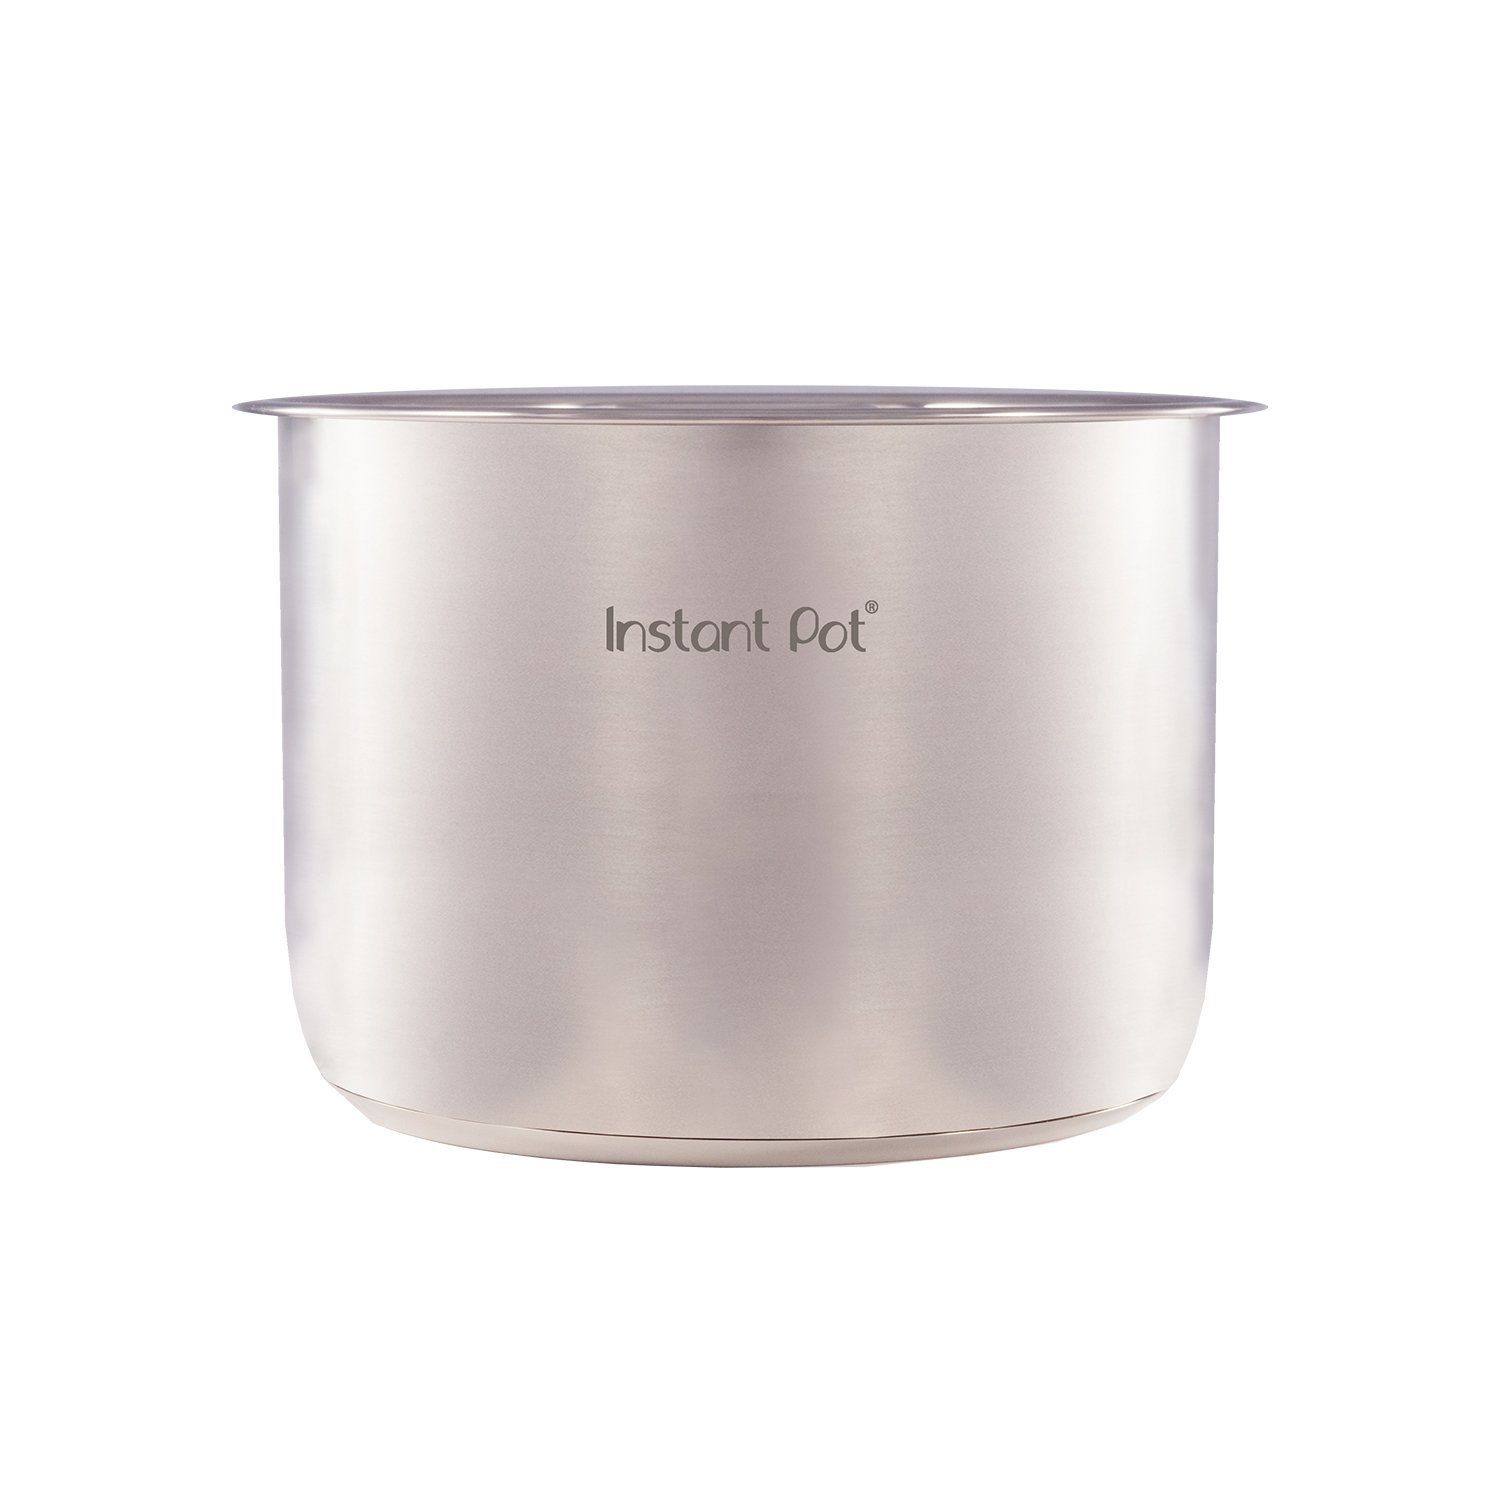 Genuine Instant Pot Stainless Steel Inner Cooking Pot - 6 Quart